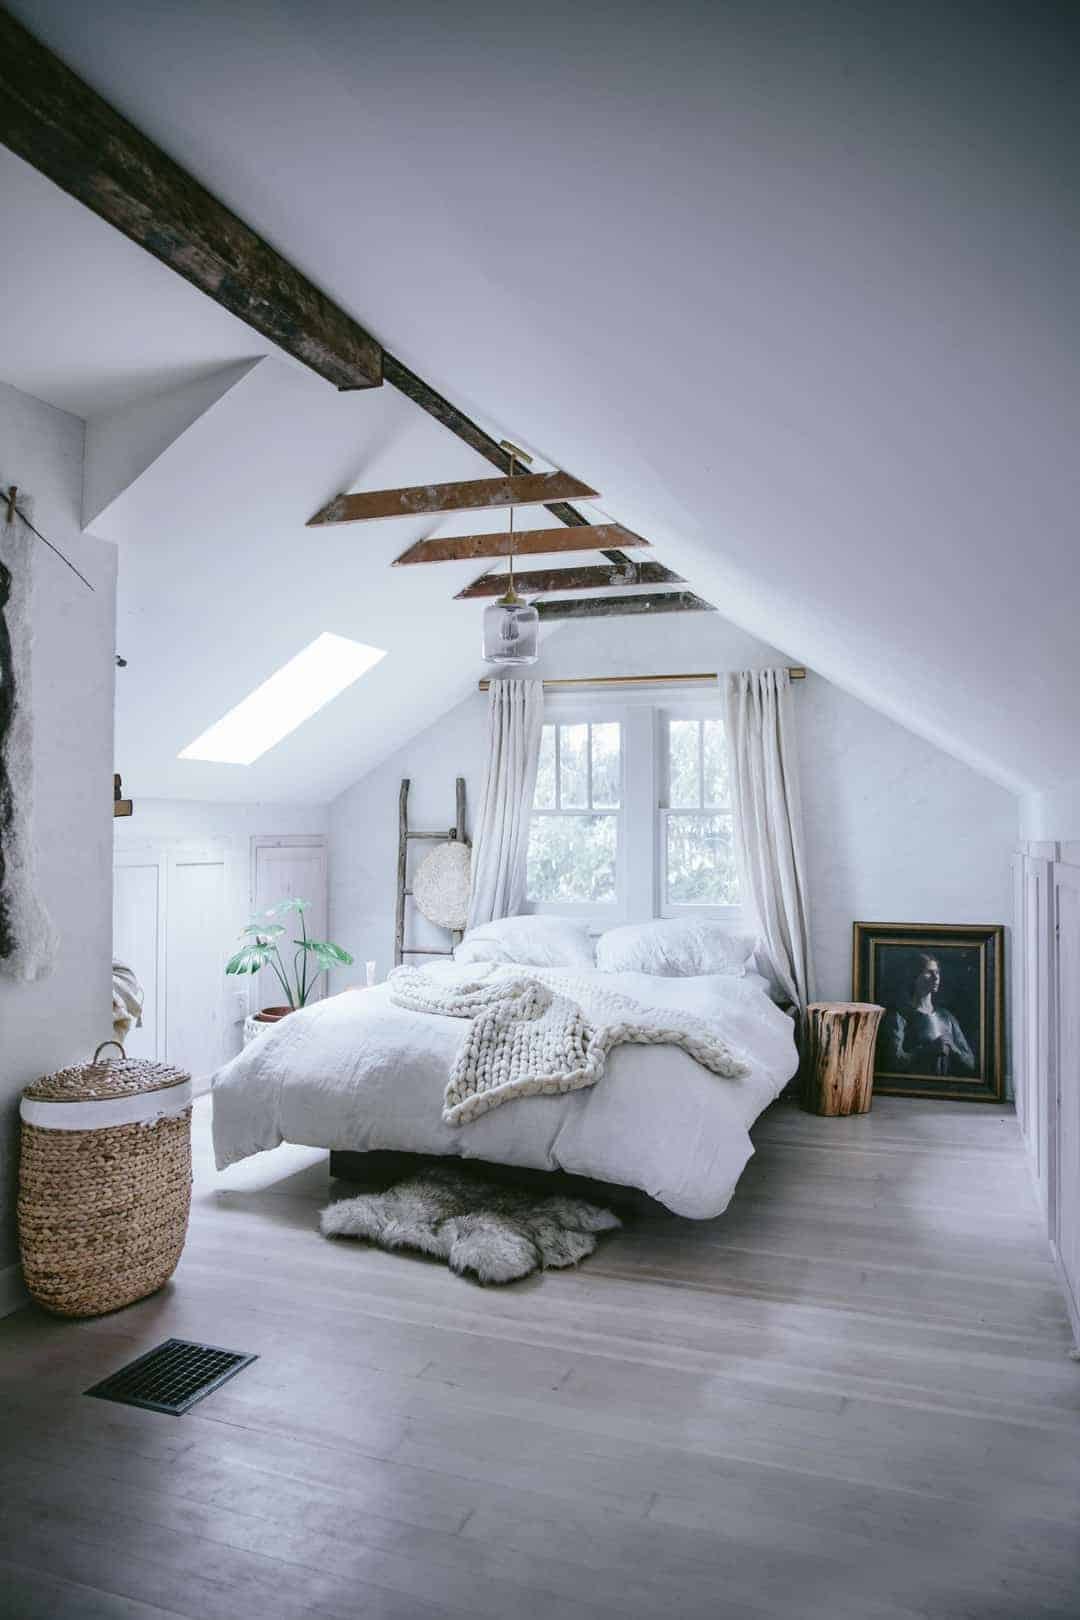 love this modern rustic white and natural wood and basket bedroom by Eva Kosmas Flores. Click through to find our more about Eva's beautiful world as well as other modern rustic interior inspiration you'll love